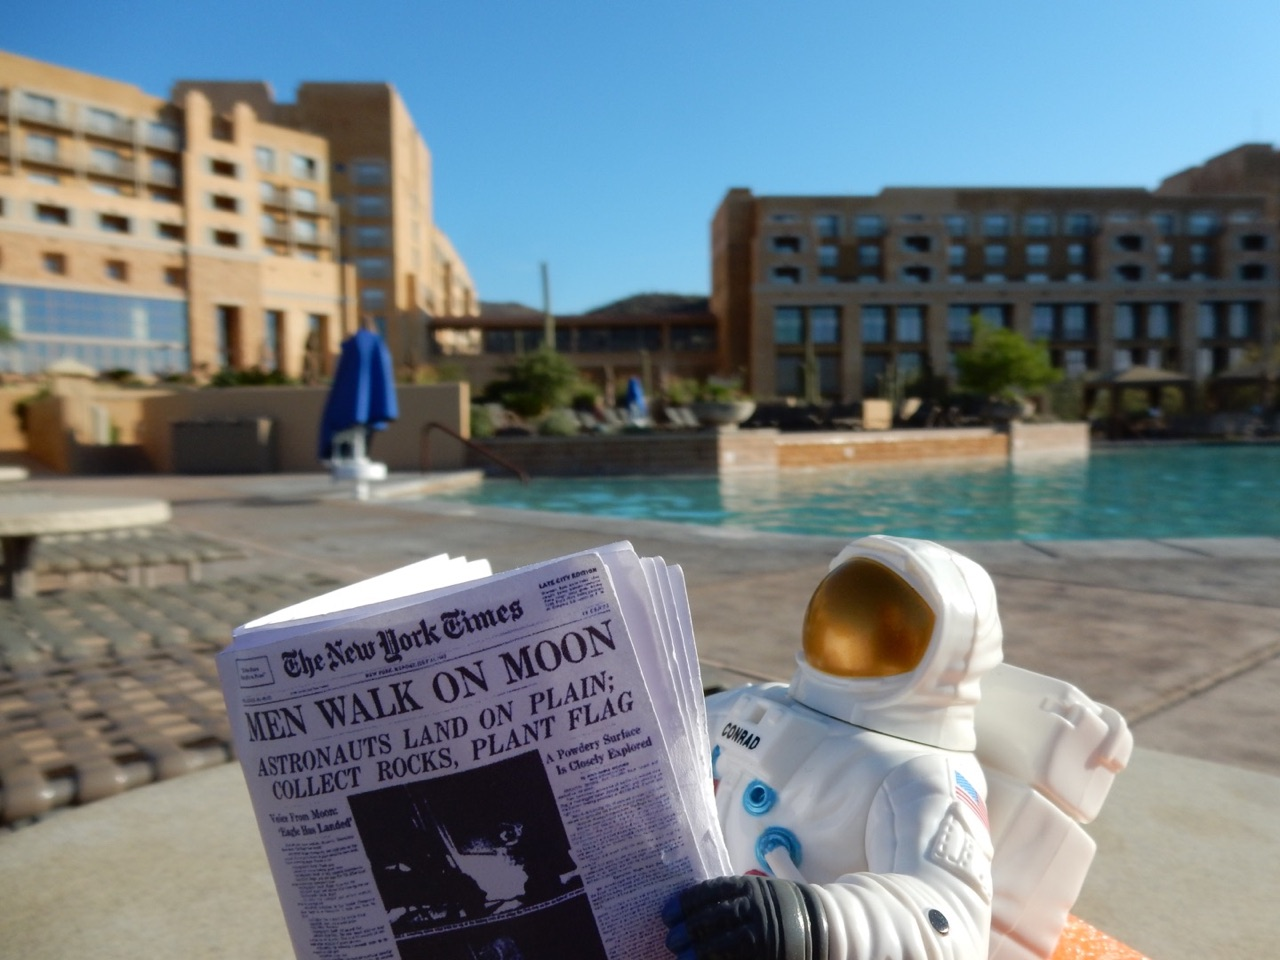 Pete chilling by the pool in Tucson, Arizona during Spacefest.